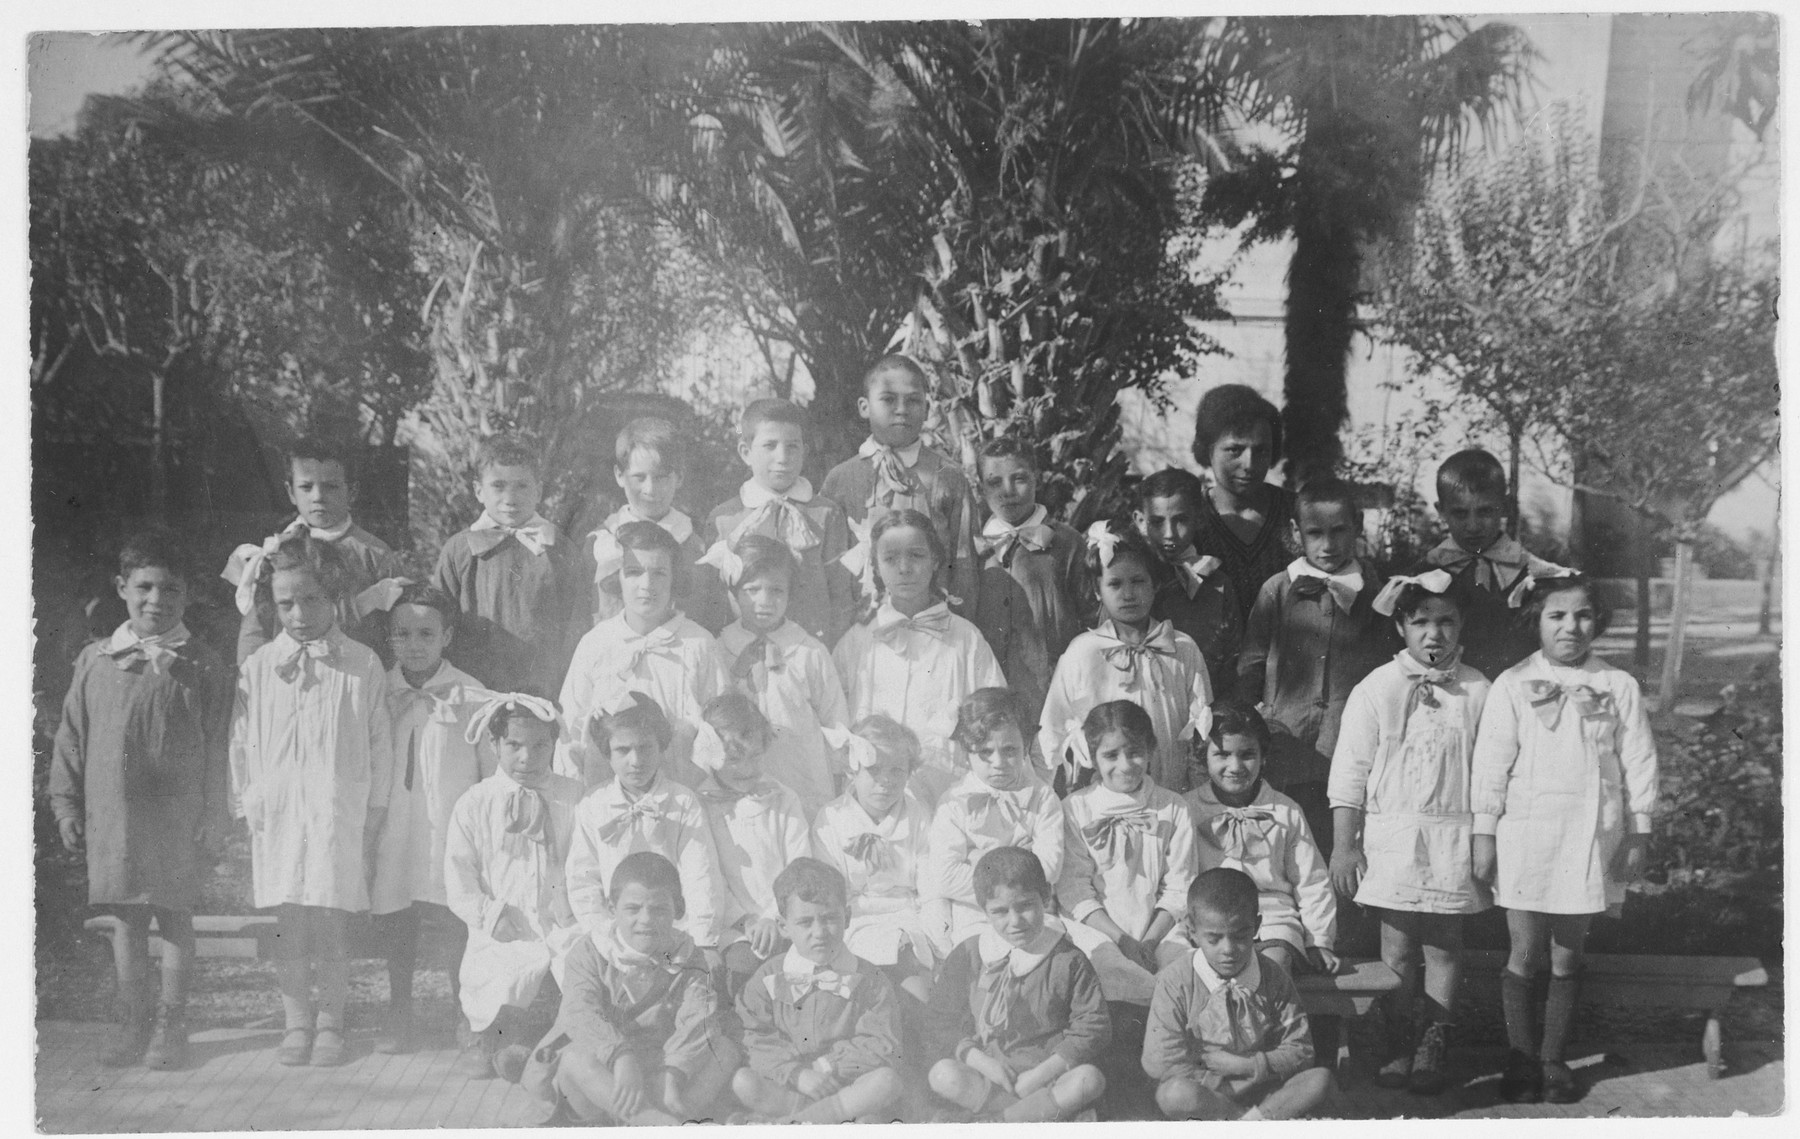 Lina Zarfatti poses with the children in her class at the Jewish L'Ecole Polacco in Rome.